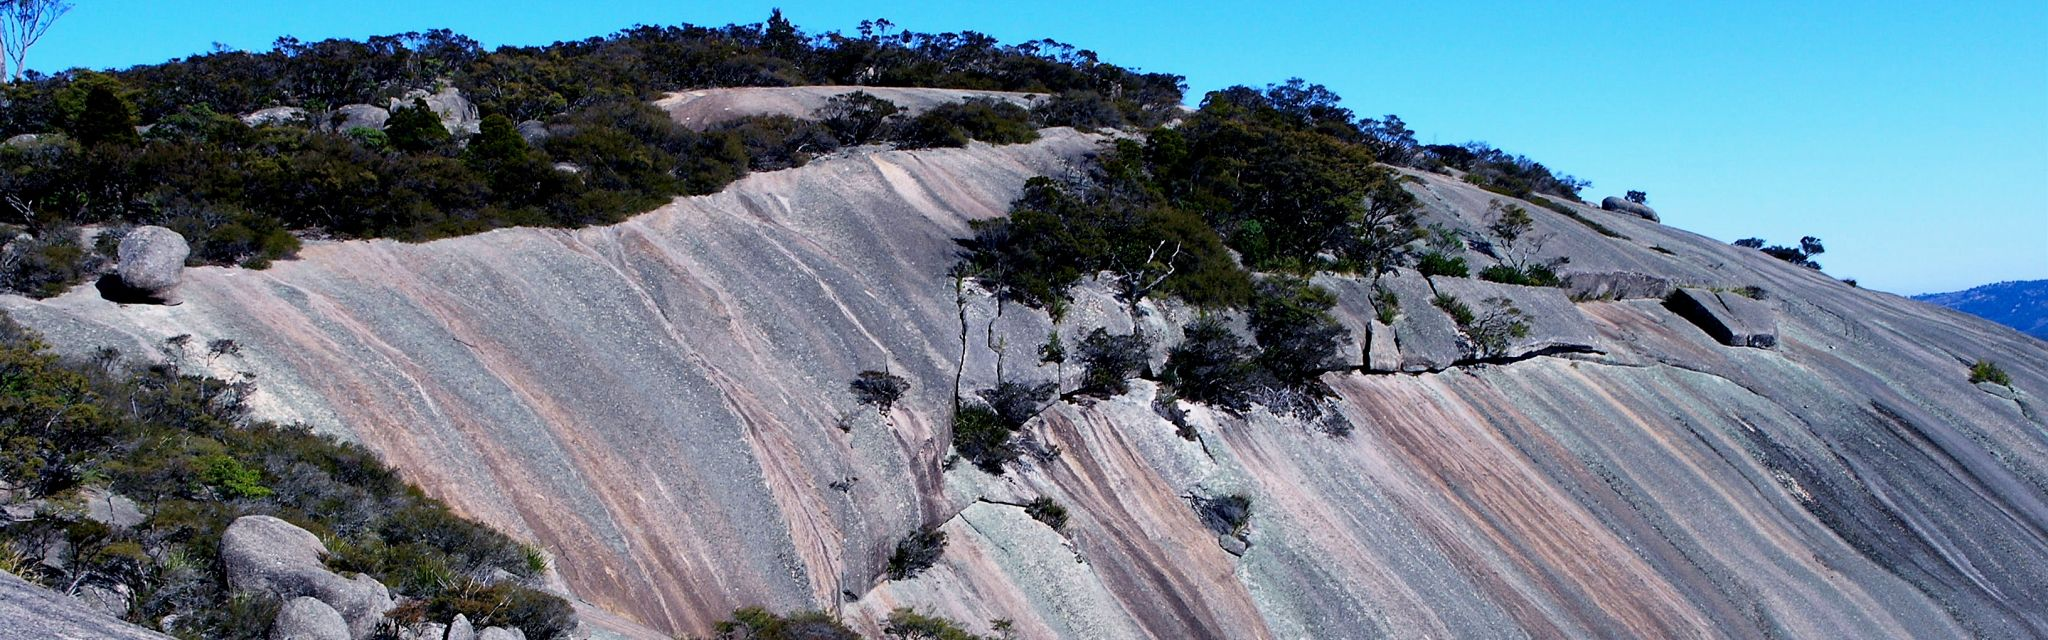 Colourful slopes of Bald Rock discovered on our Uniquely Australia and Great Divide Tours